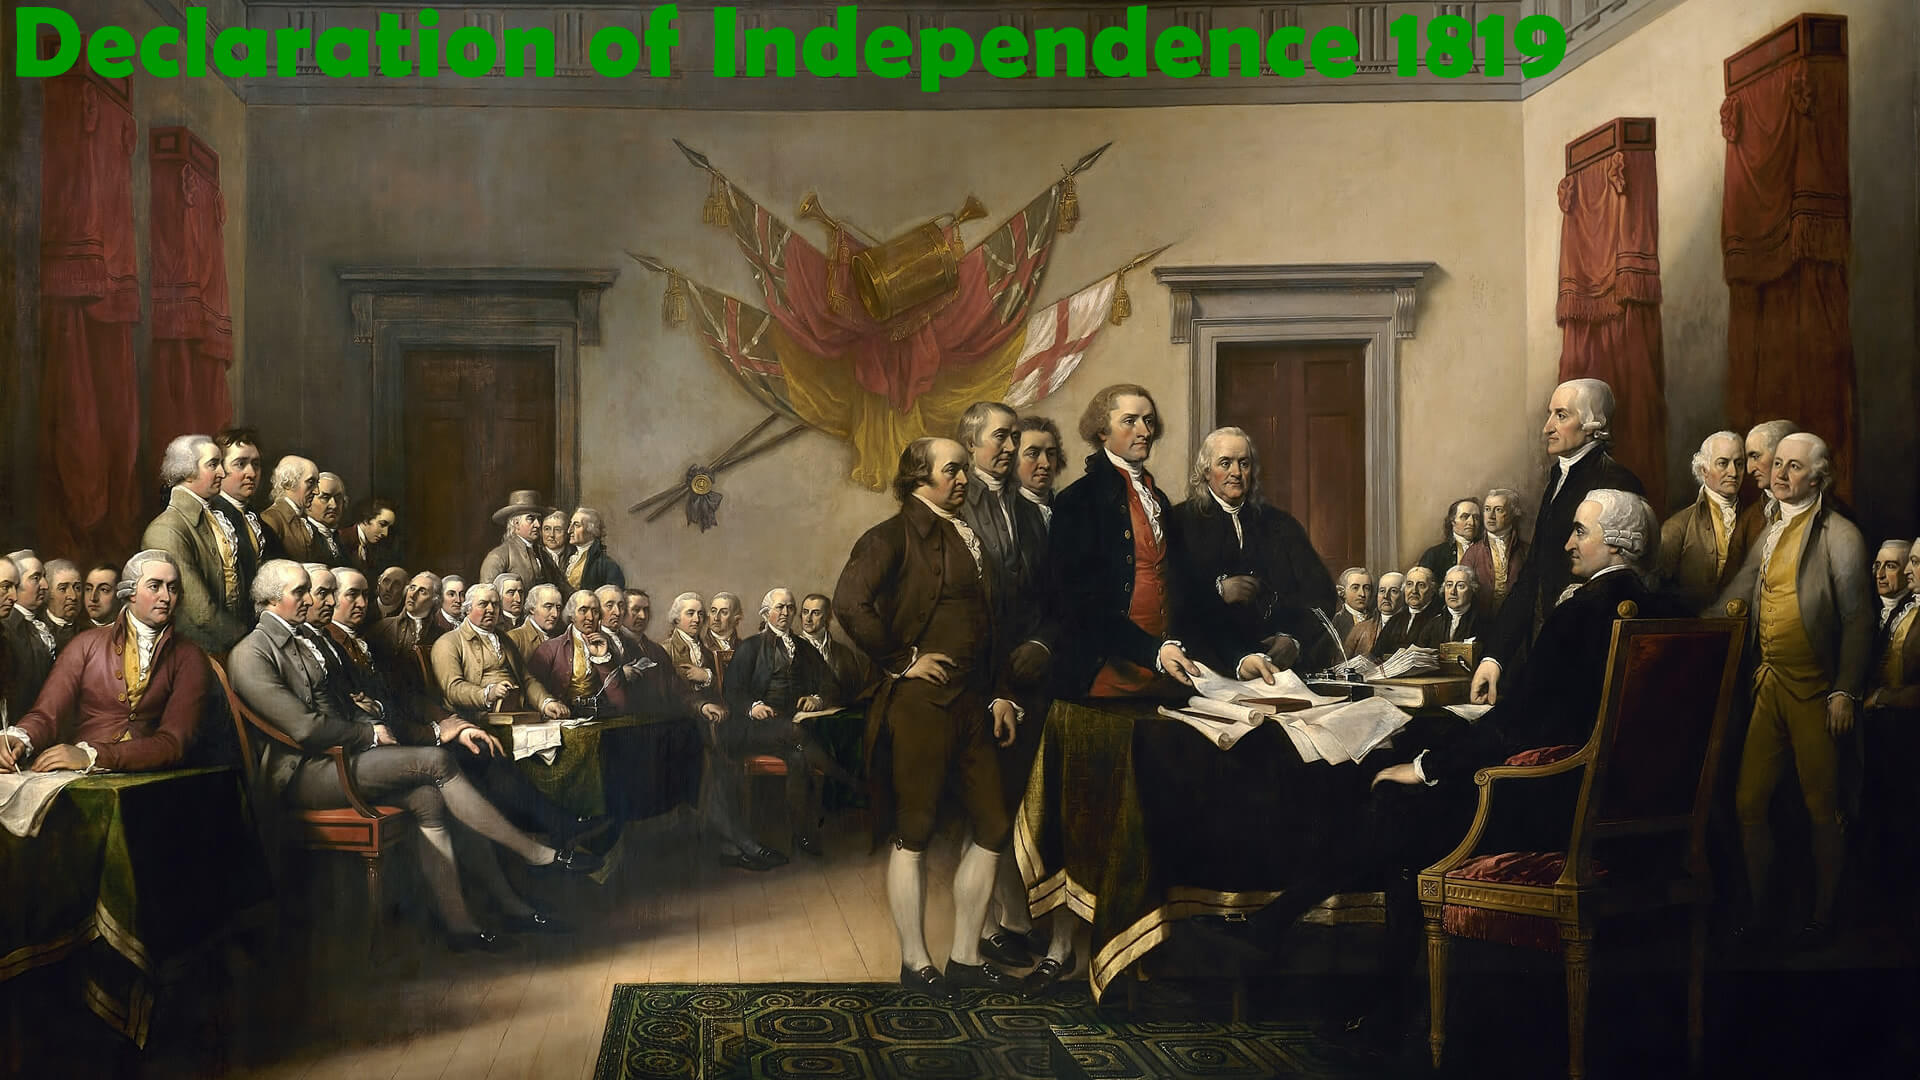 Declaration of Independence 1819